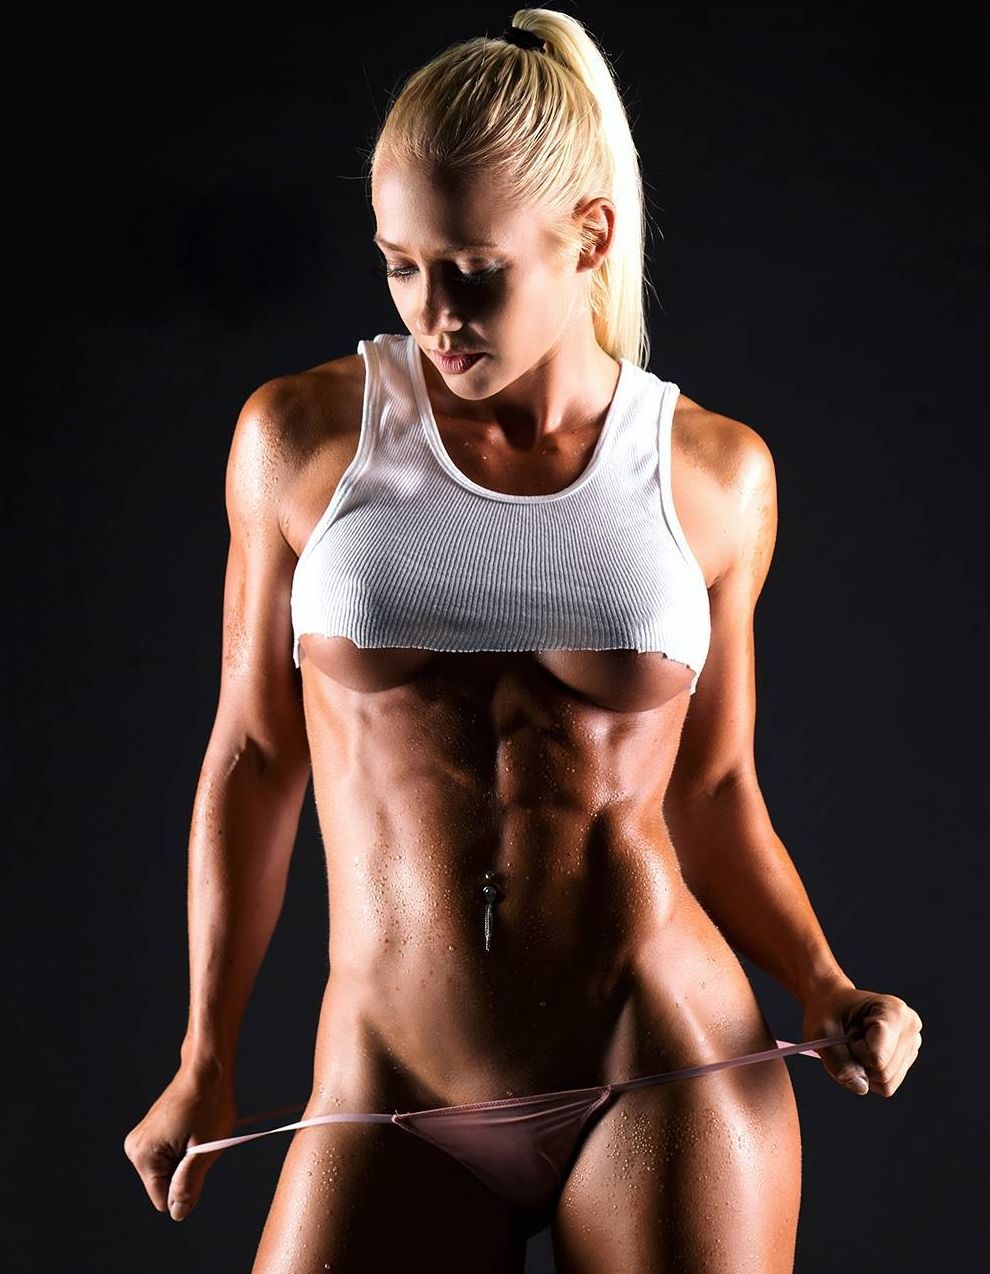 Nude Female Bodybuilders Like They Are